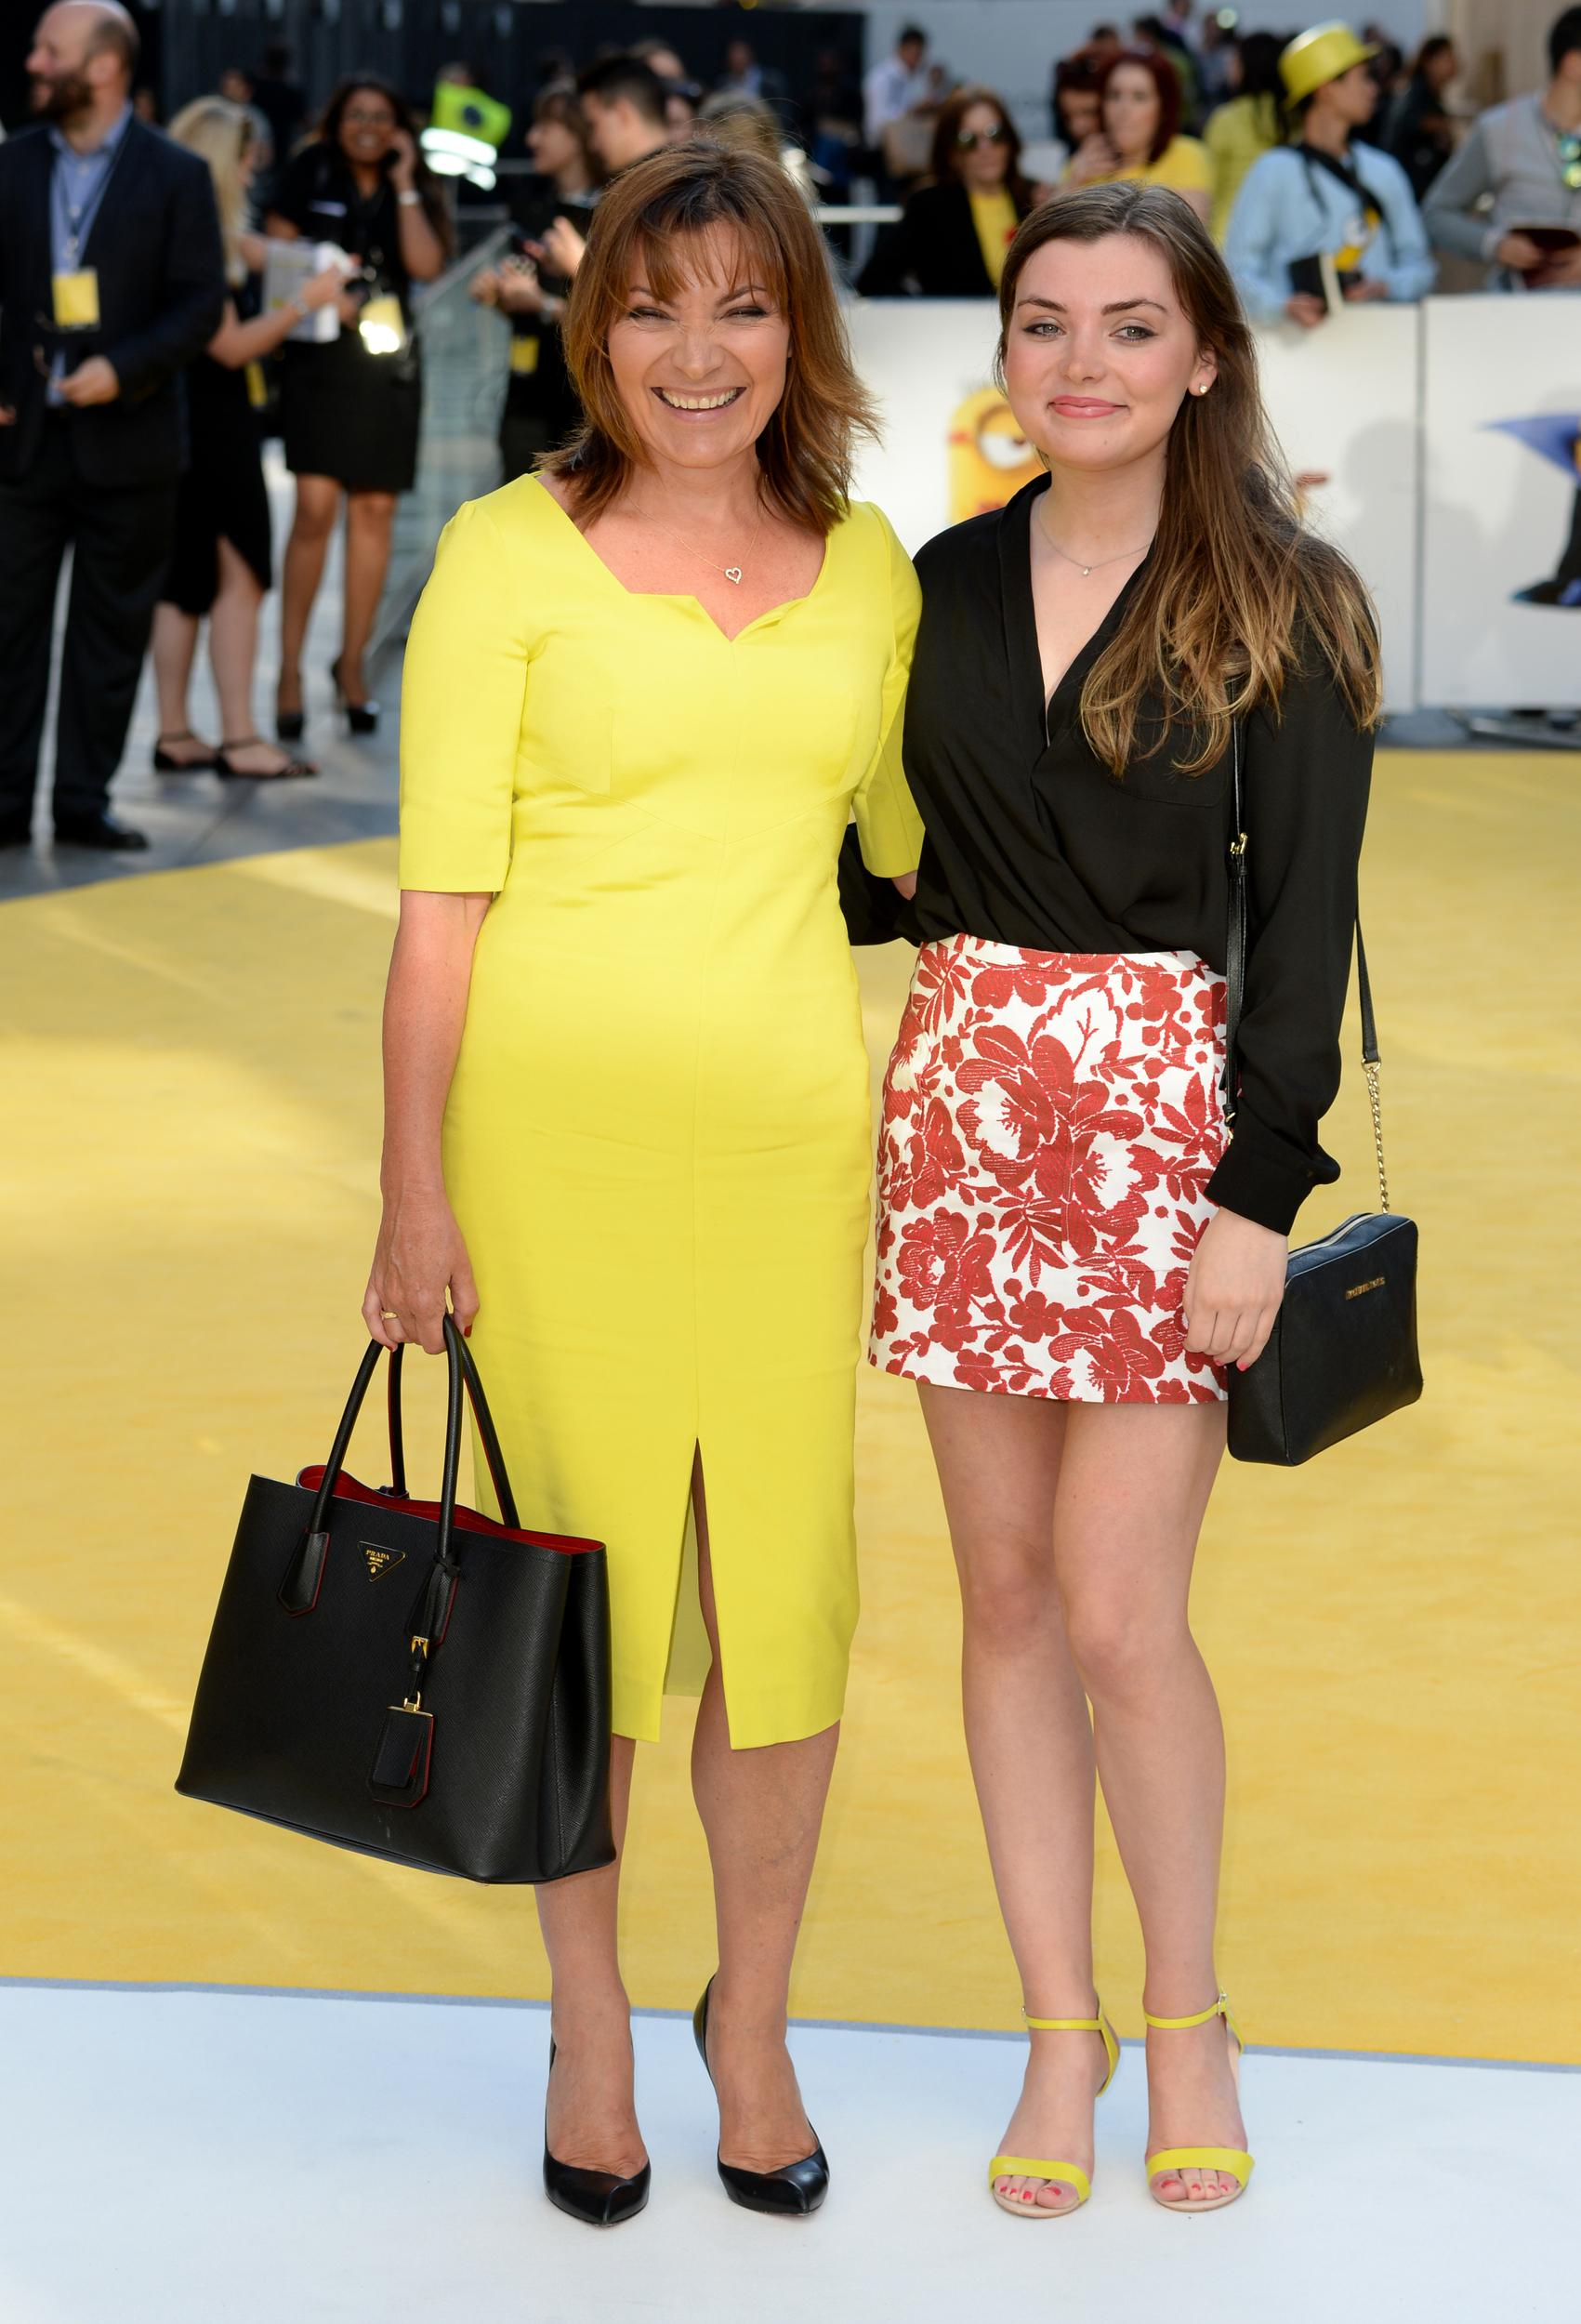 Lorraine Kelly and daughter Rosie attending the Minions UK Film Premiere held at the Odeon cinema Leicester Square, London(Mandatory Credit: DOUG PETERS/ EMPICS Entertainment)